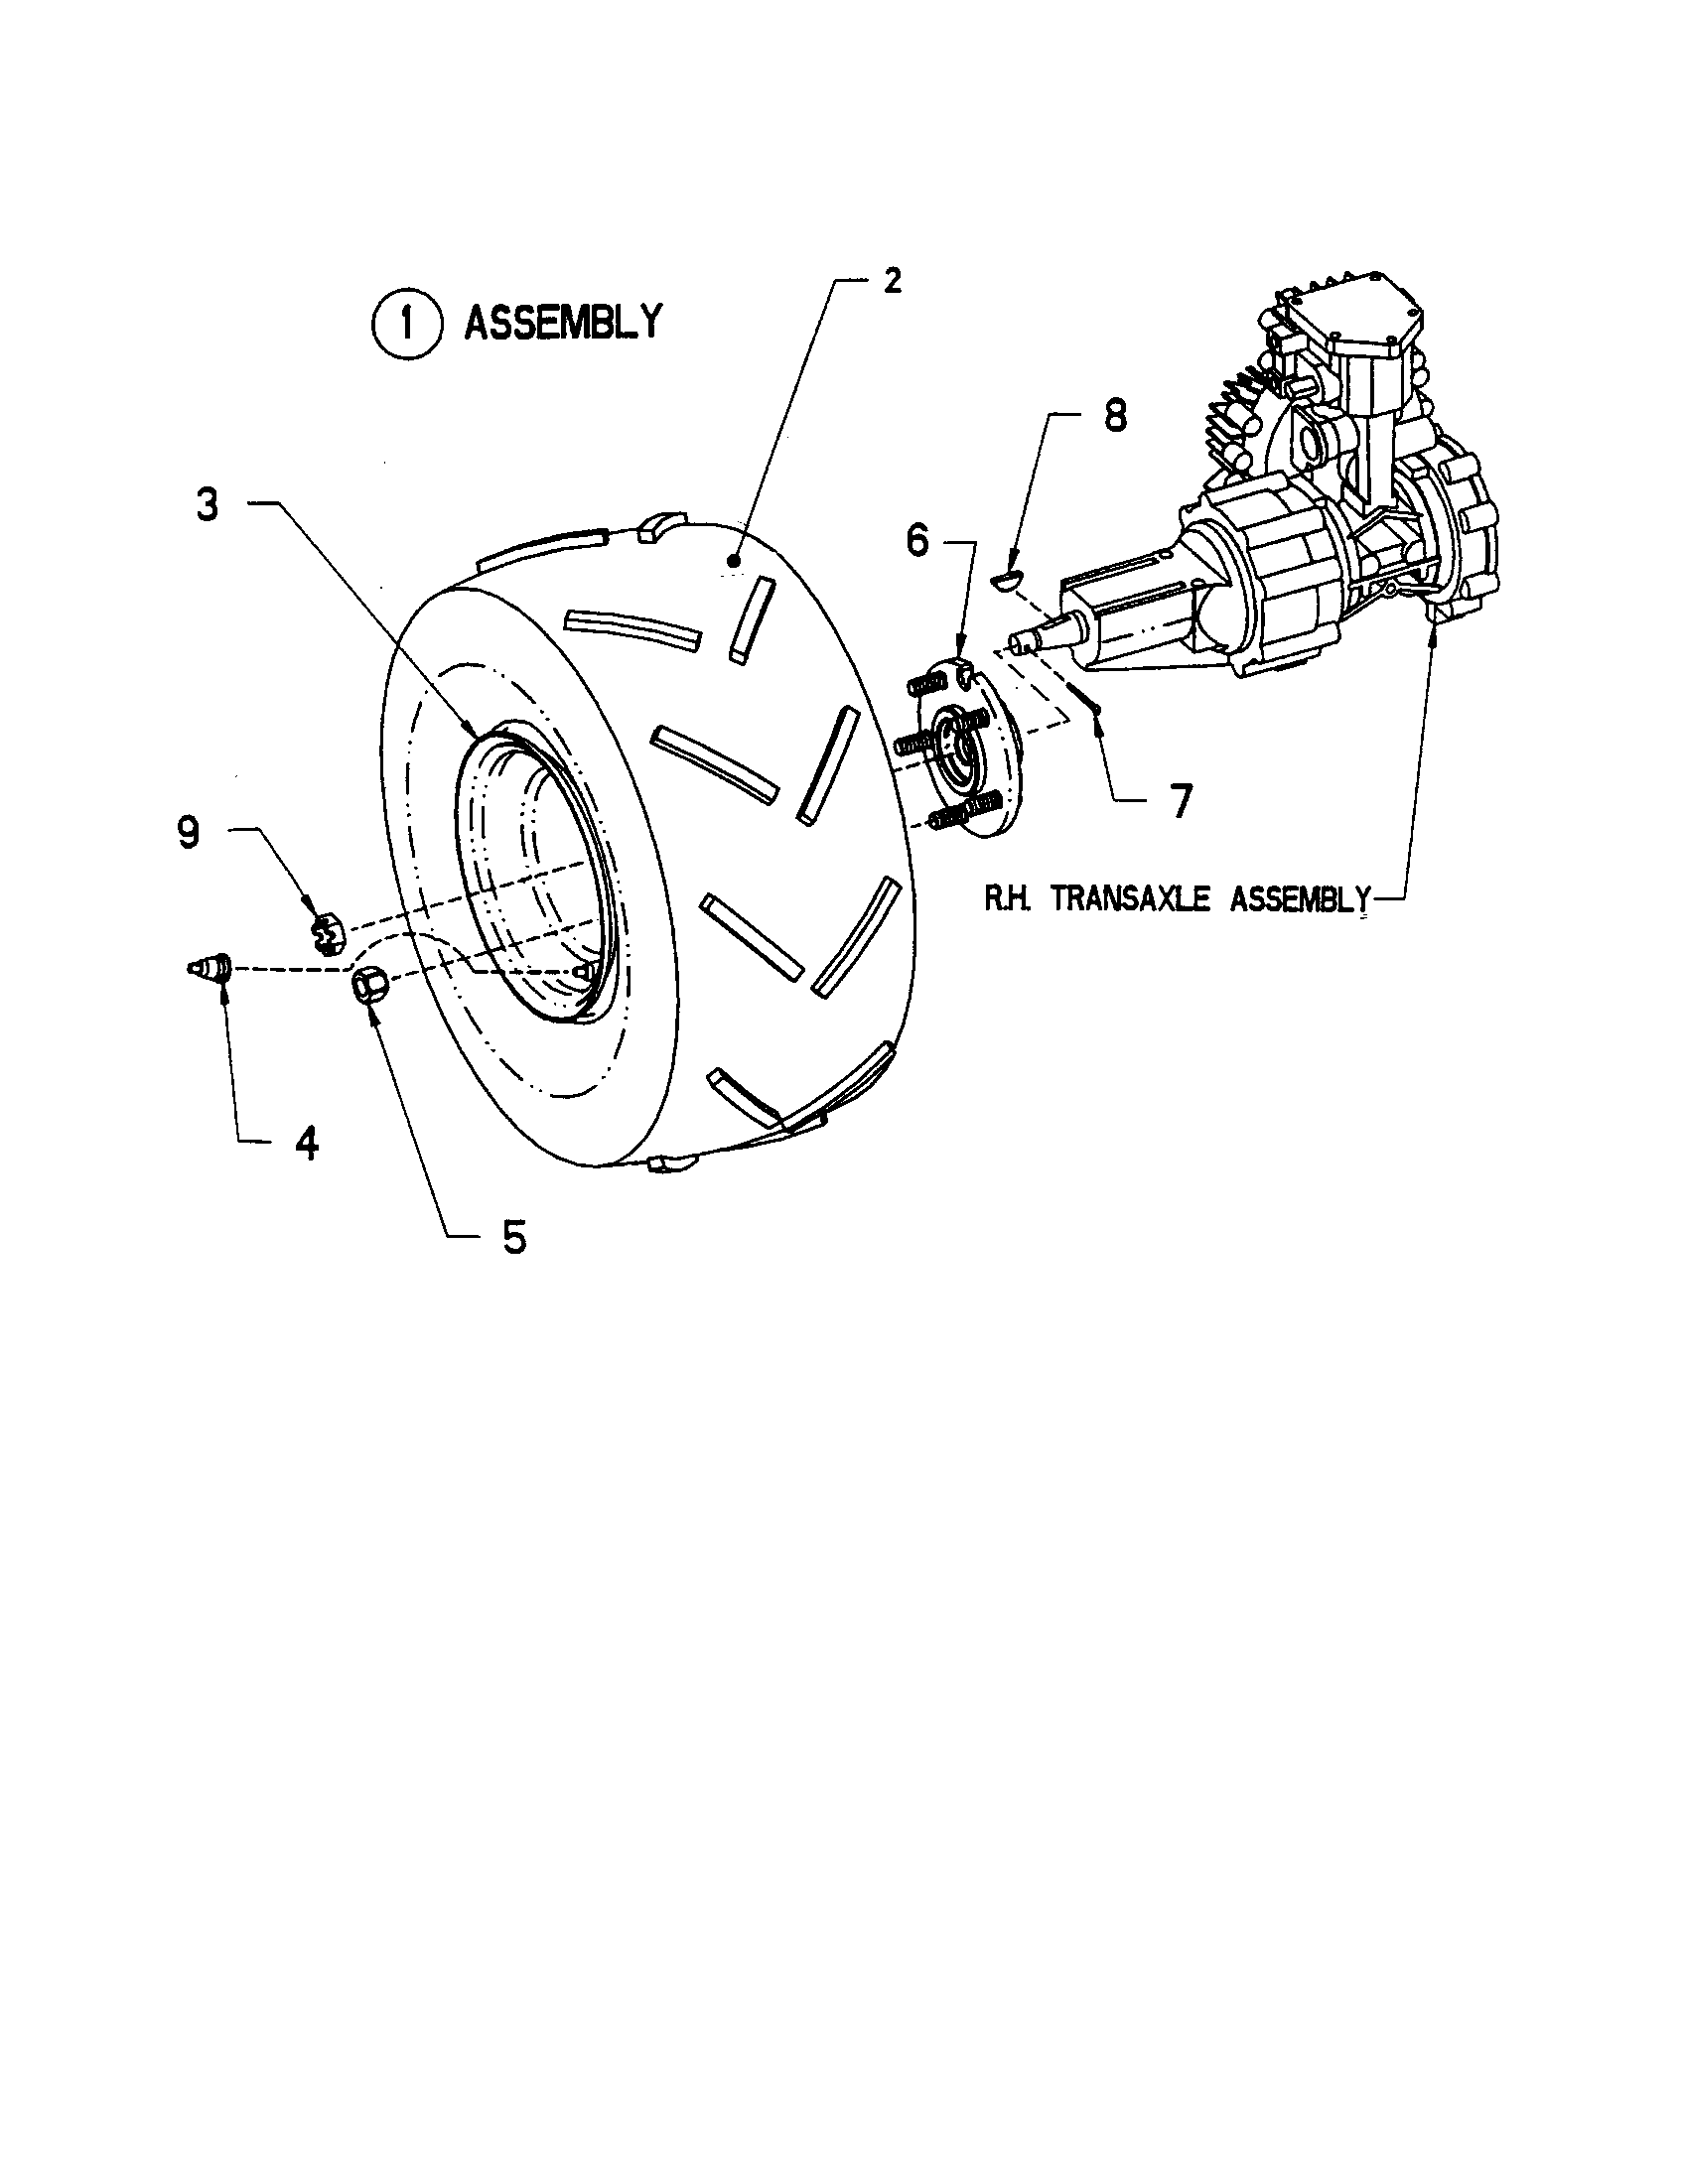 snapper model zf2300gku lawn, riding mower rear engine genuine partsWiring Gas Only Diagram Parts List For Model Zf2300gku Snapper #11